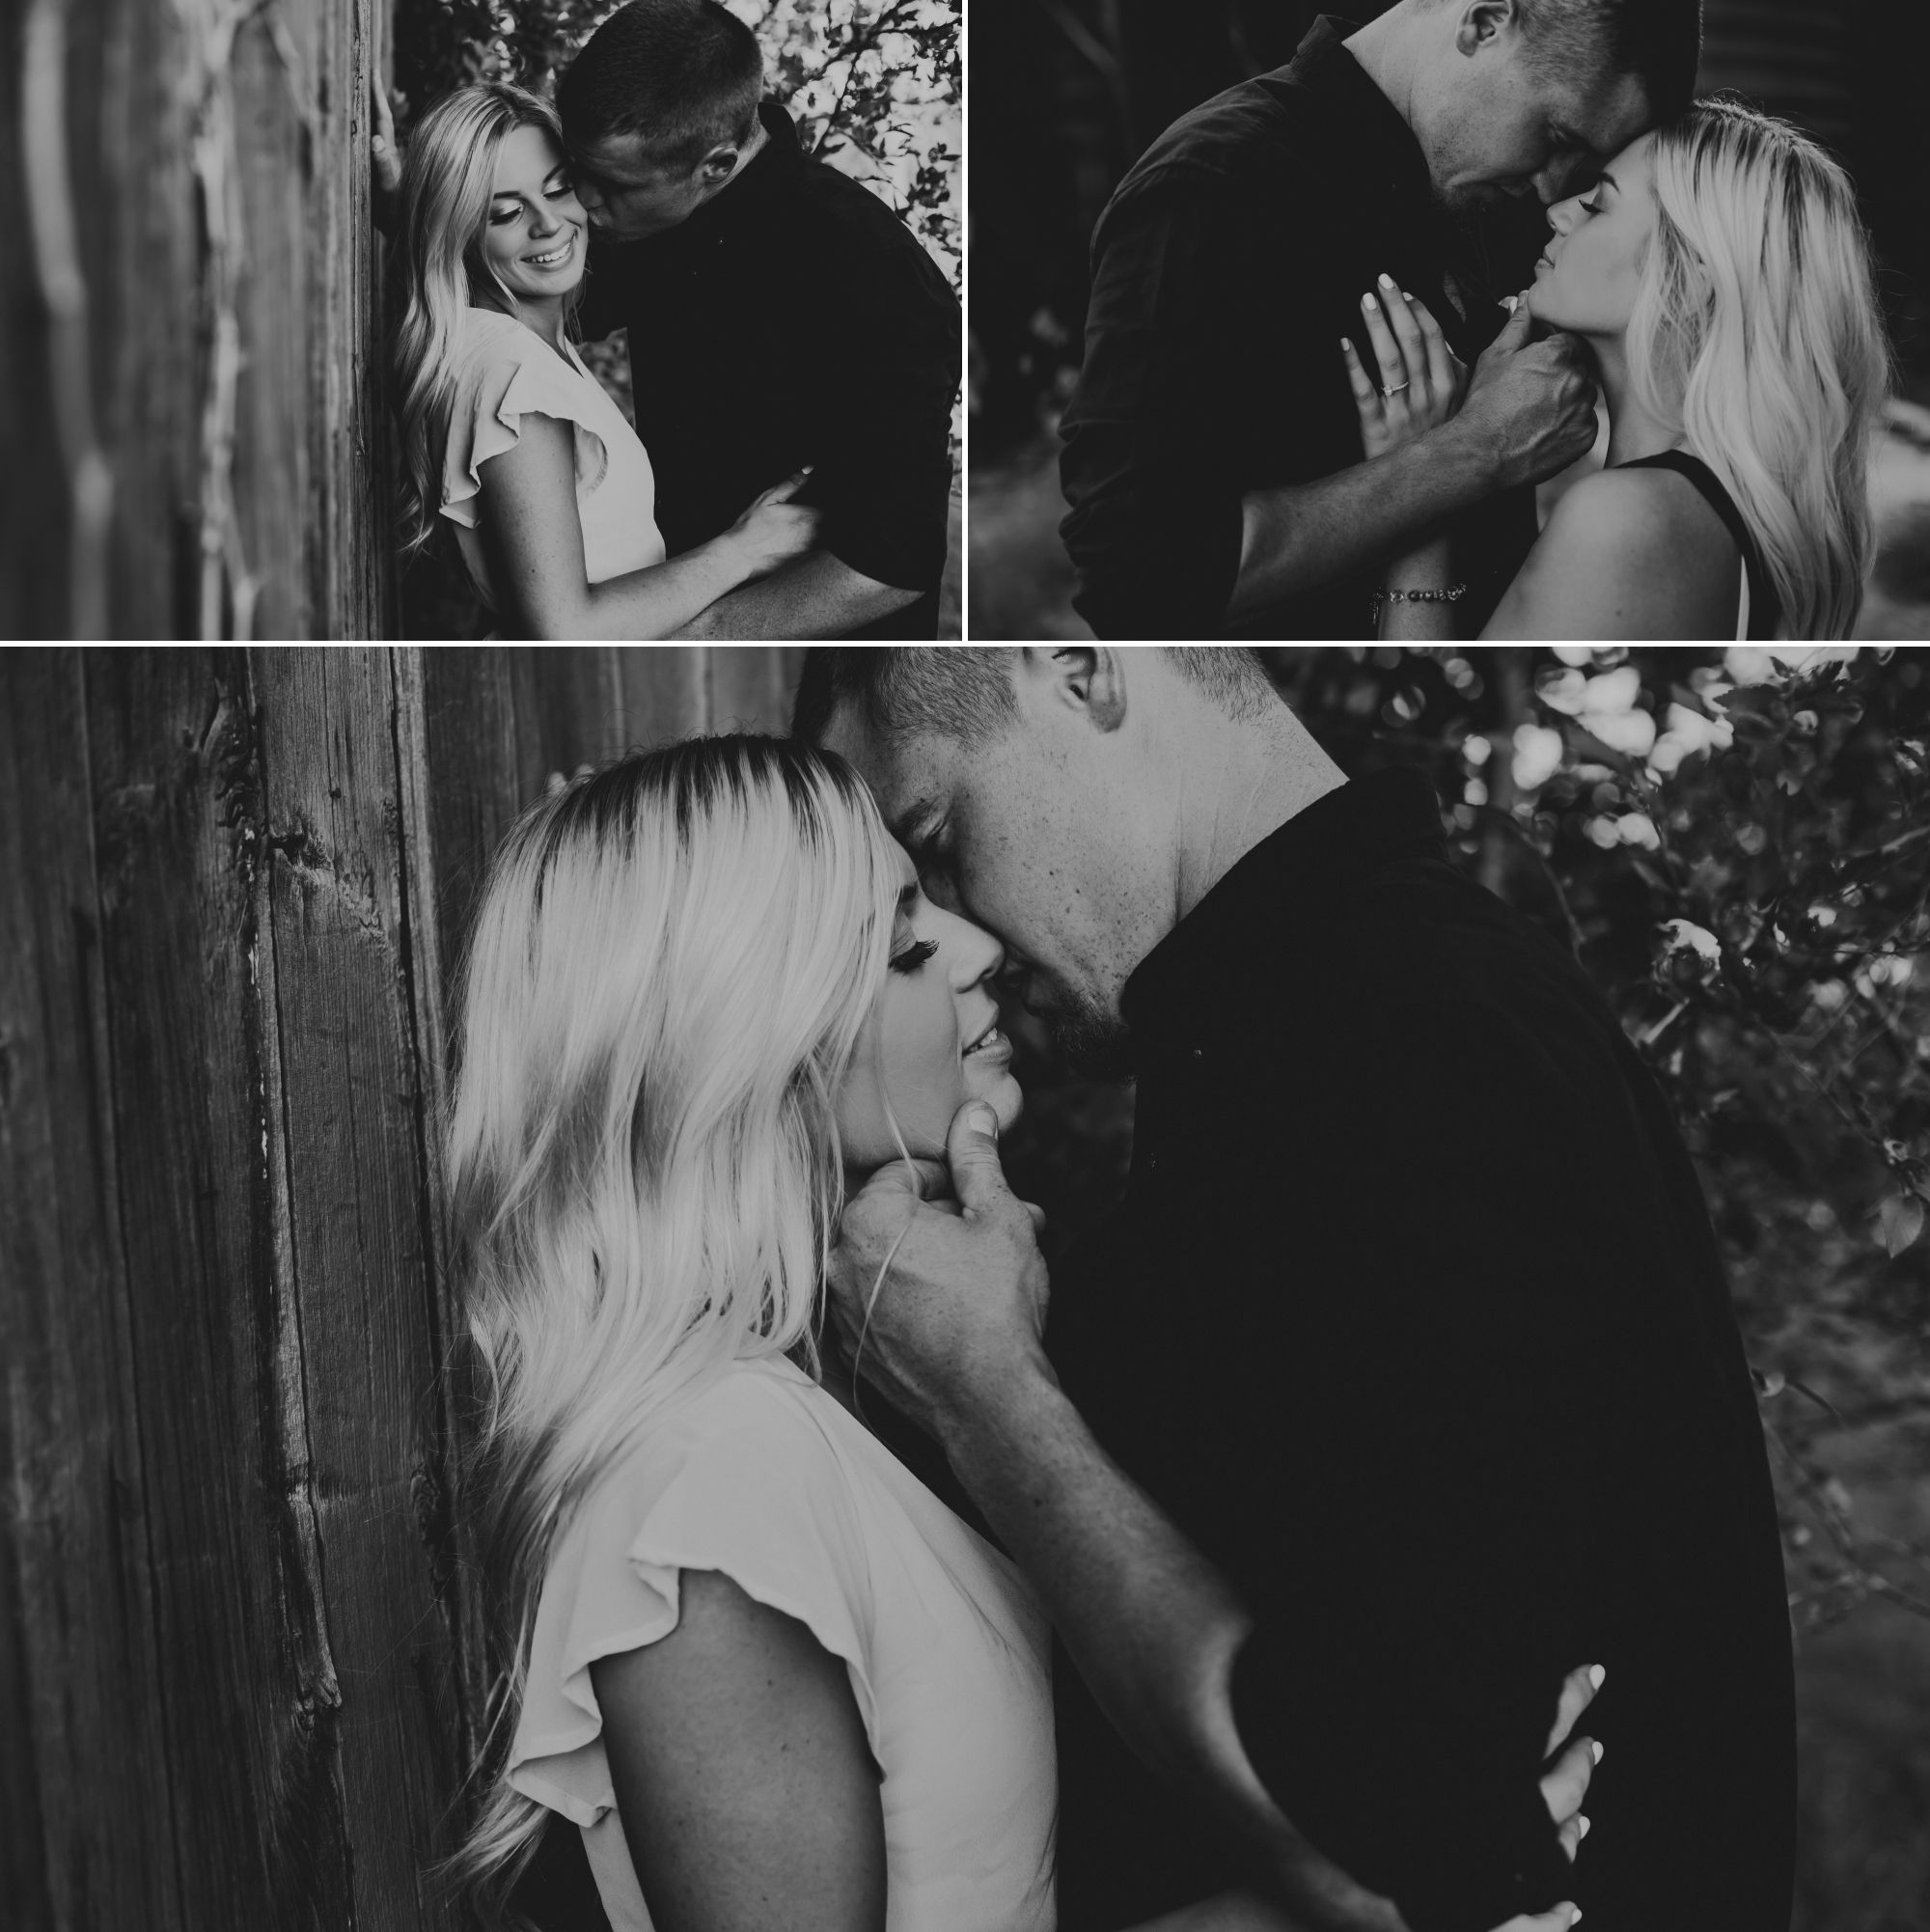 Black and white collage of man kissing woman's cheek, their foreheads together, and them almost kissing.